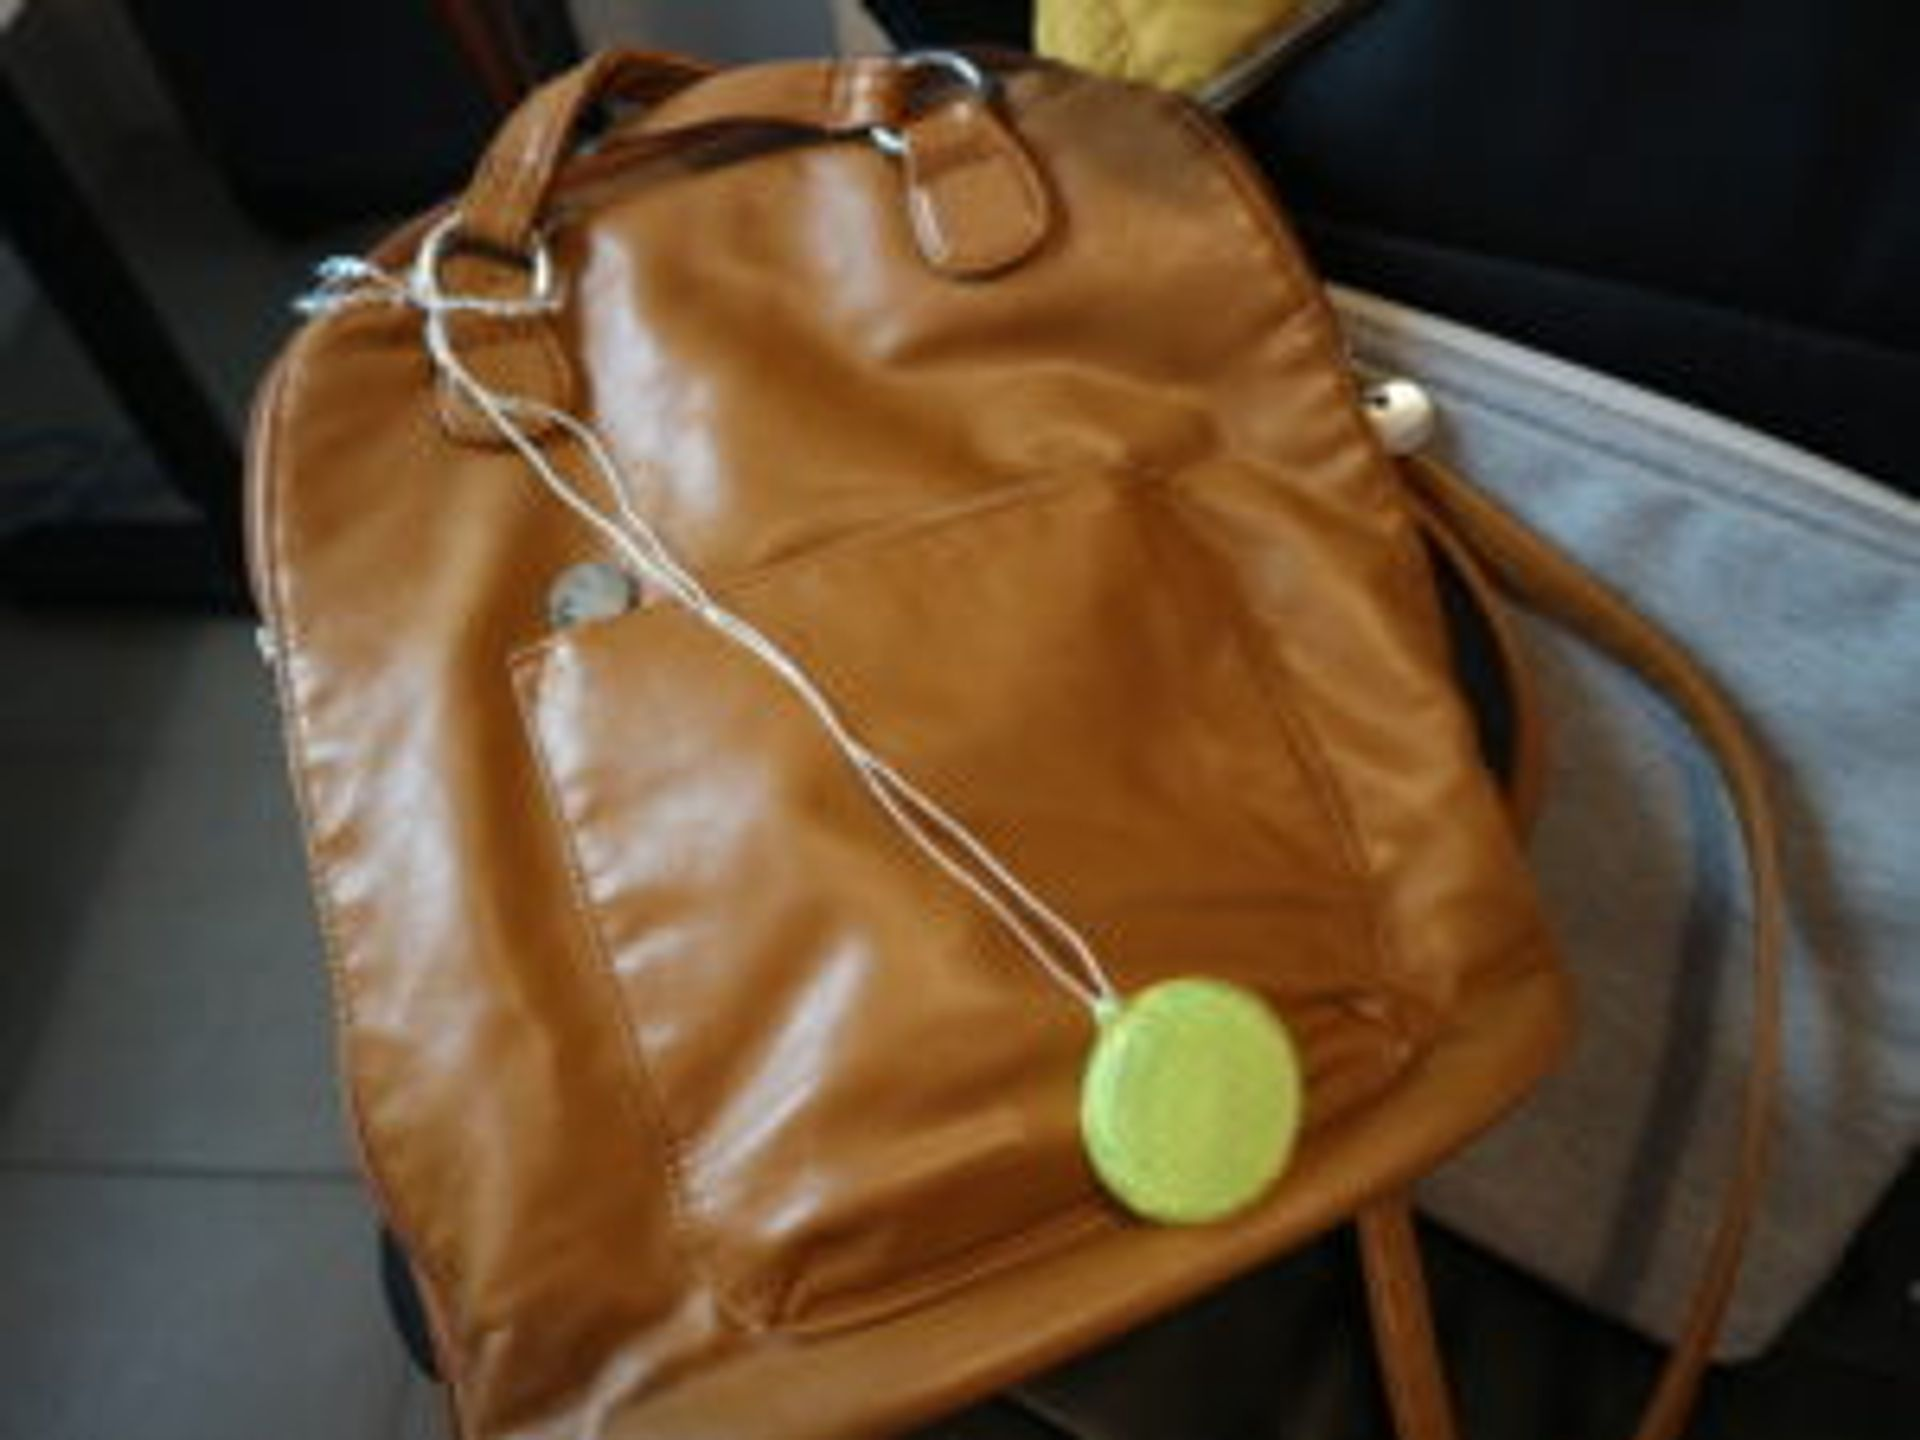 Close-up of a reflector attached to a bag.